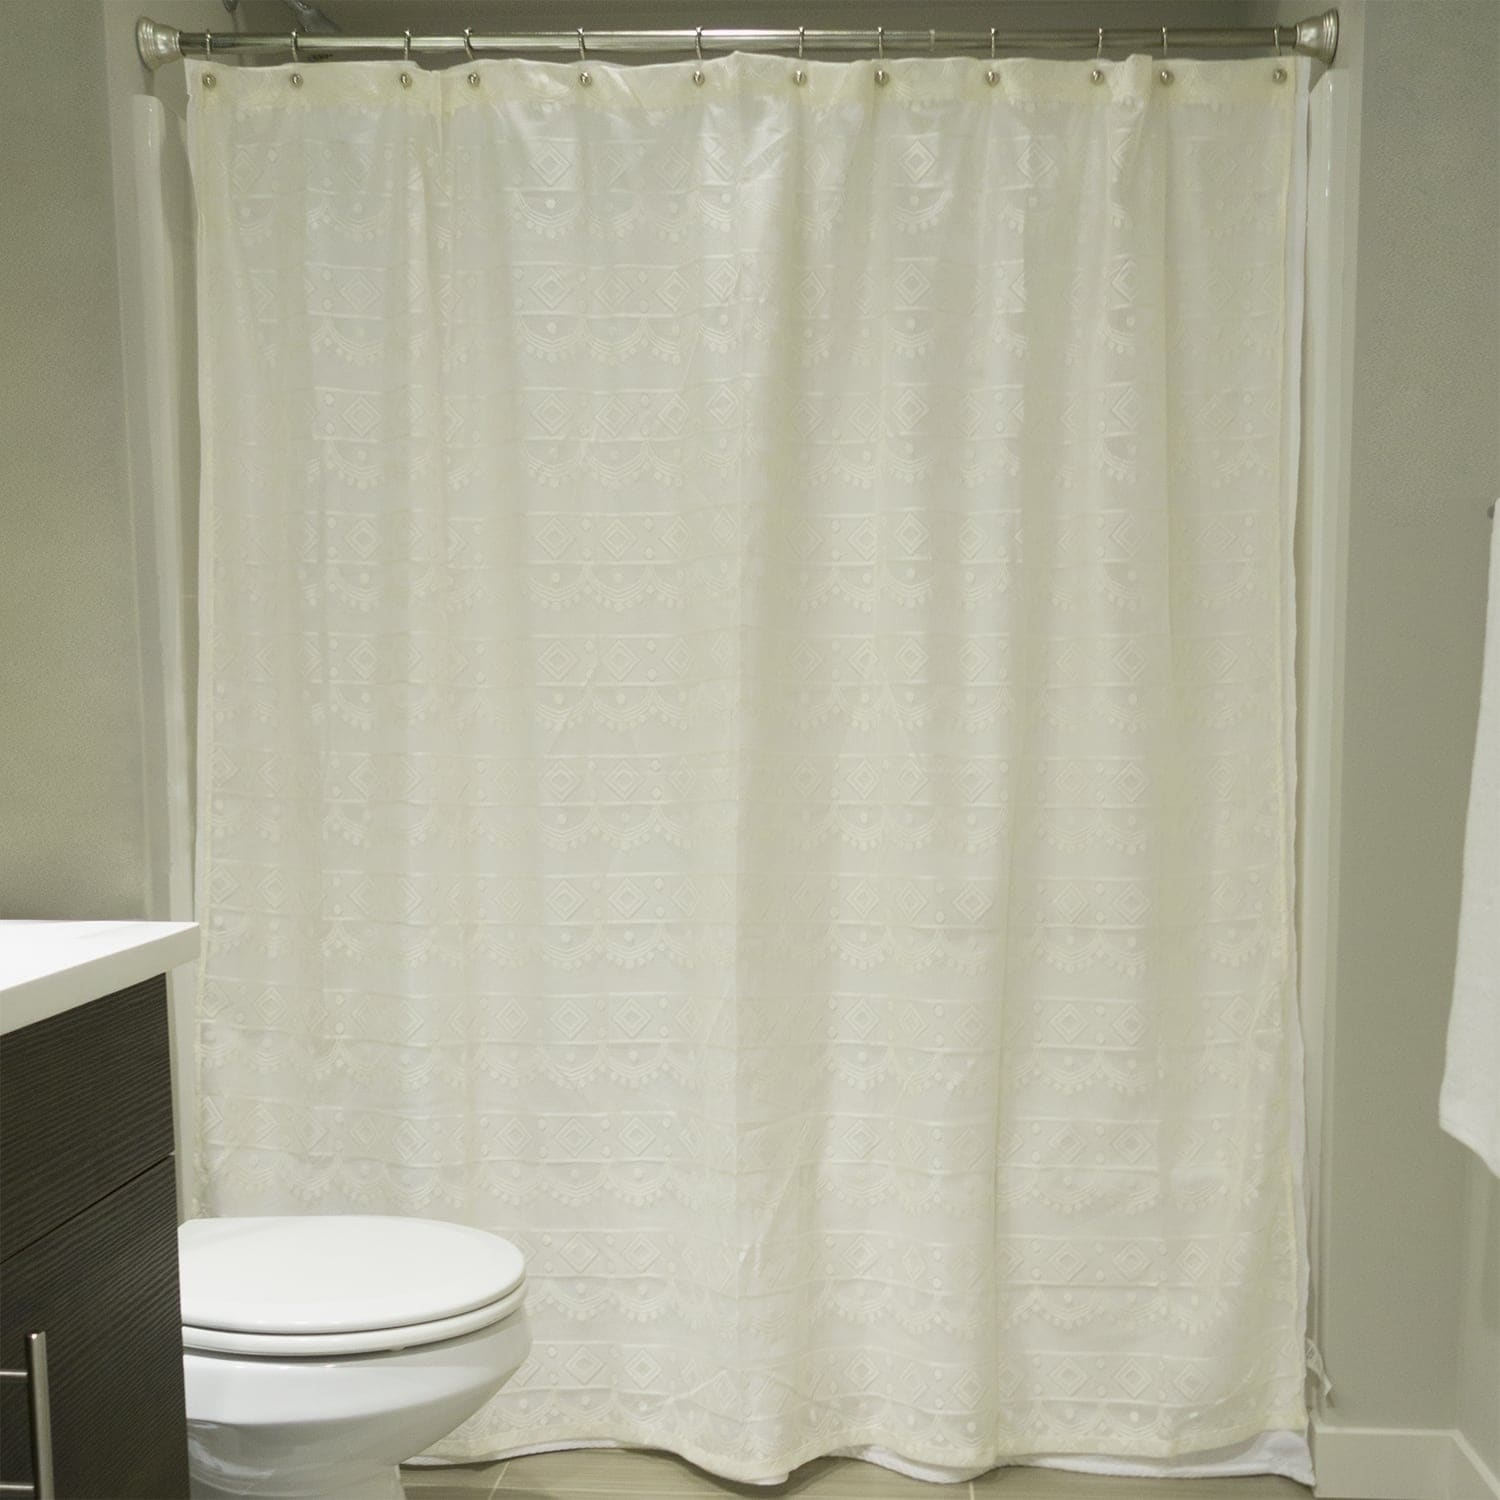 Off-White Diamond Lace Shower Curtain 738215352354 | eBay